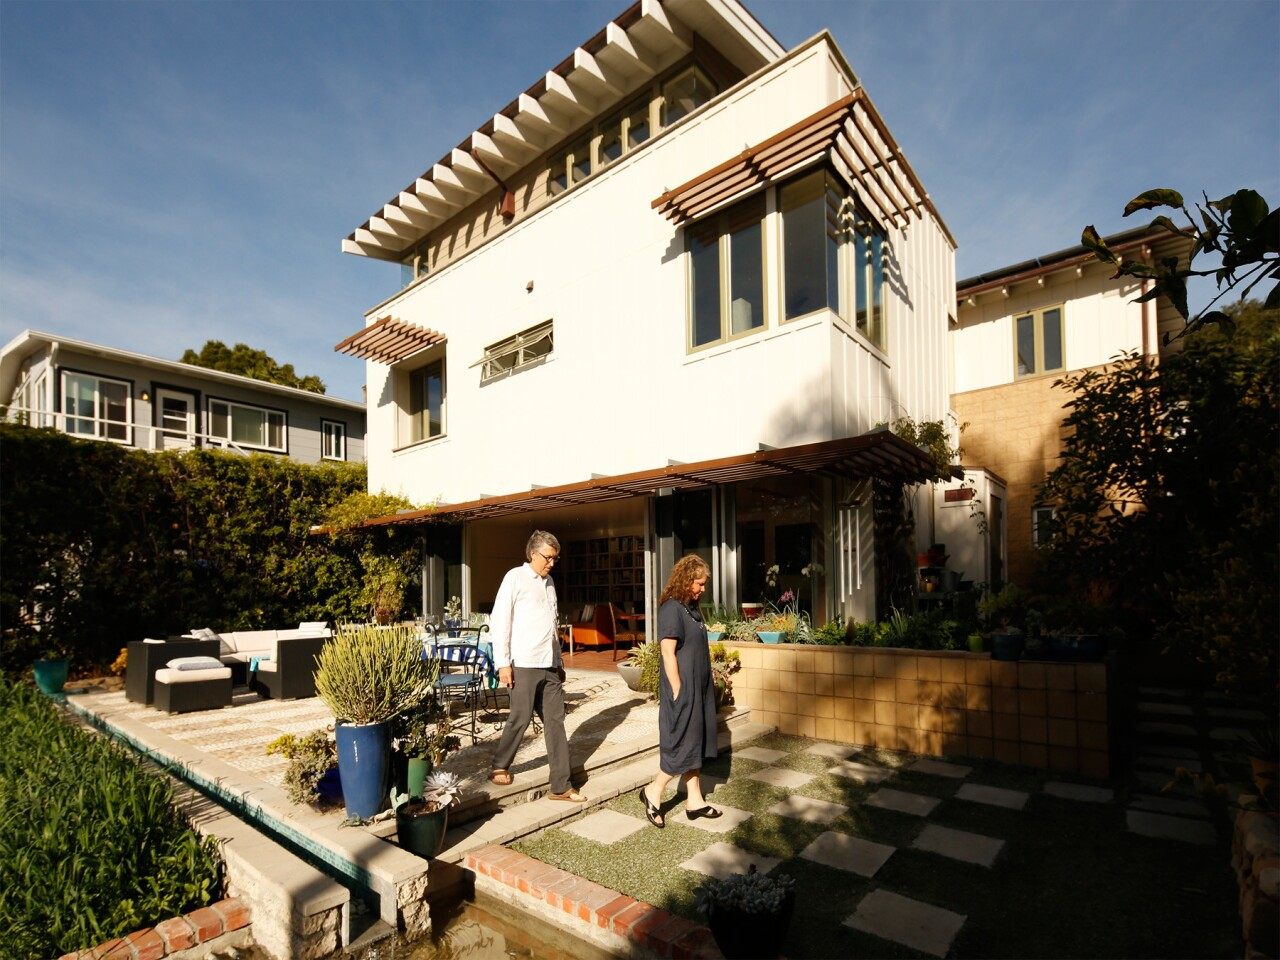 The backyard of the Santa Barbara home of architect Kevin Dumain and his wife Jill, which emphasizes indoor-outdoor California living.